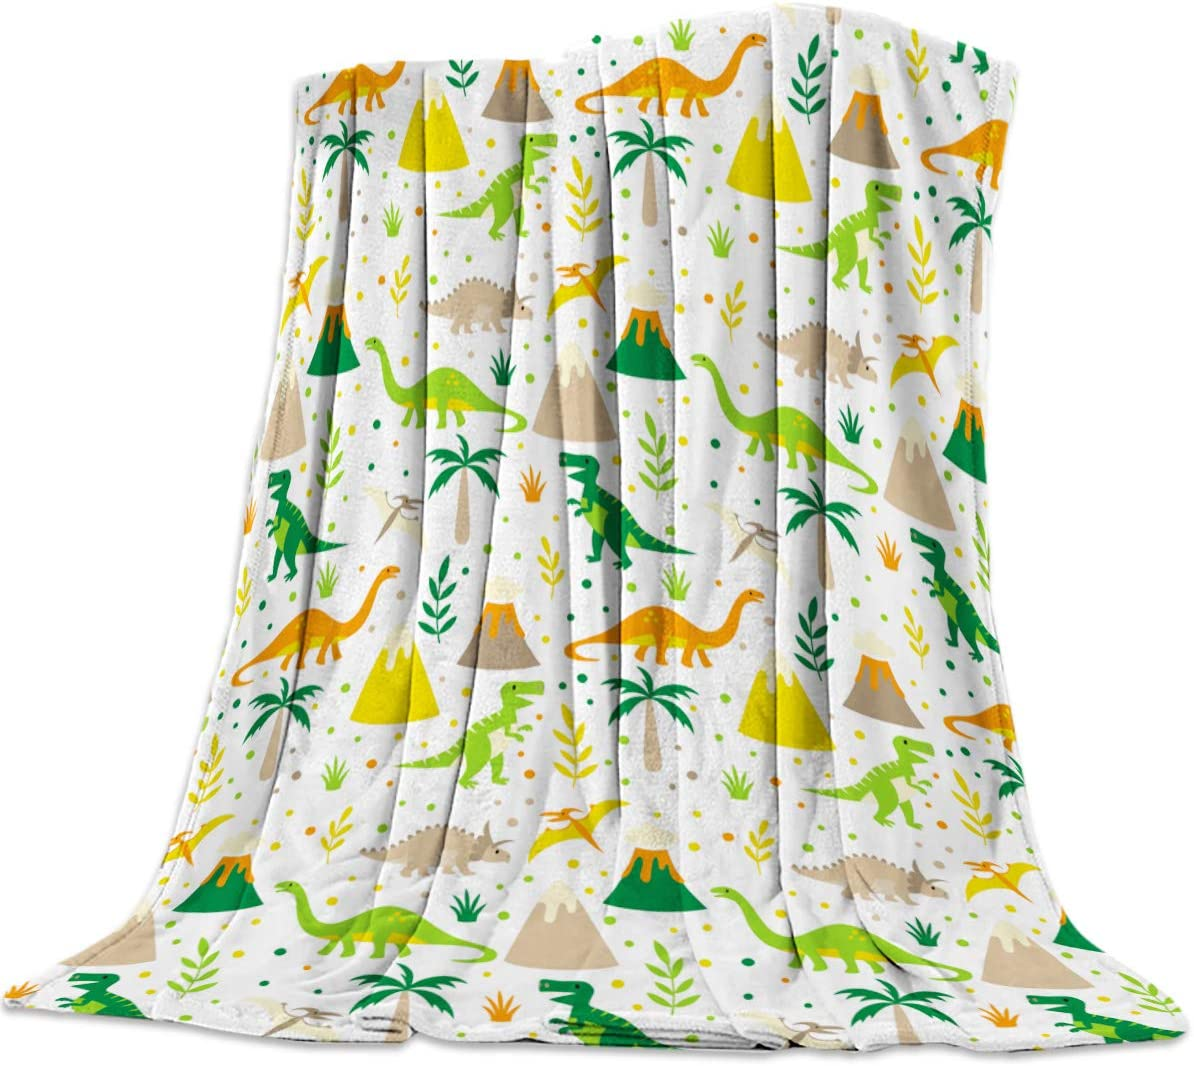 CHARMHOME OFFicial site Flannel Fleece Microfiber Dinosaurs Throw Cute Max 70% OFF Blanket